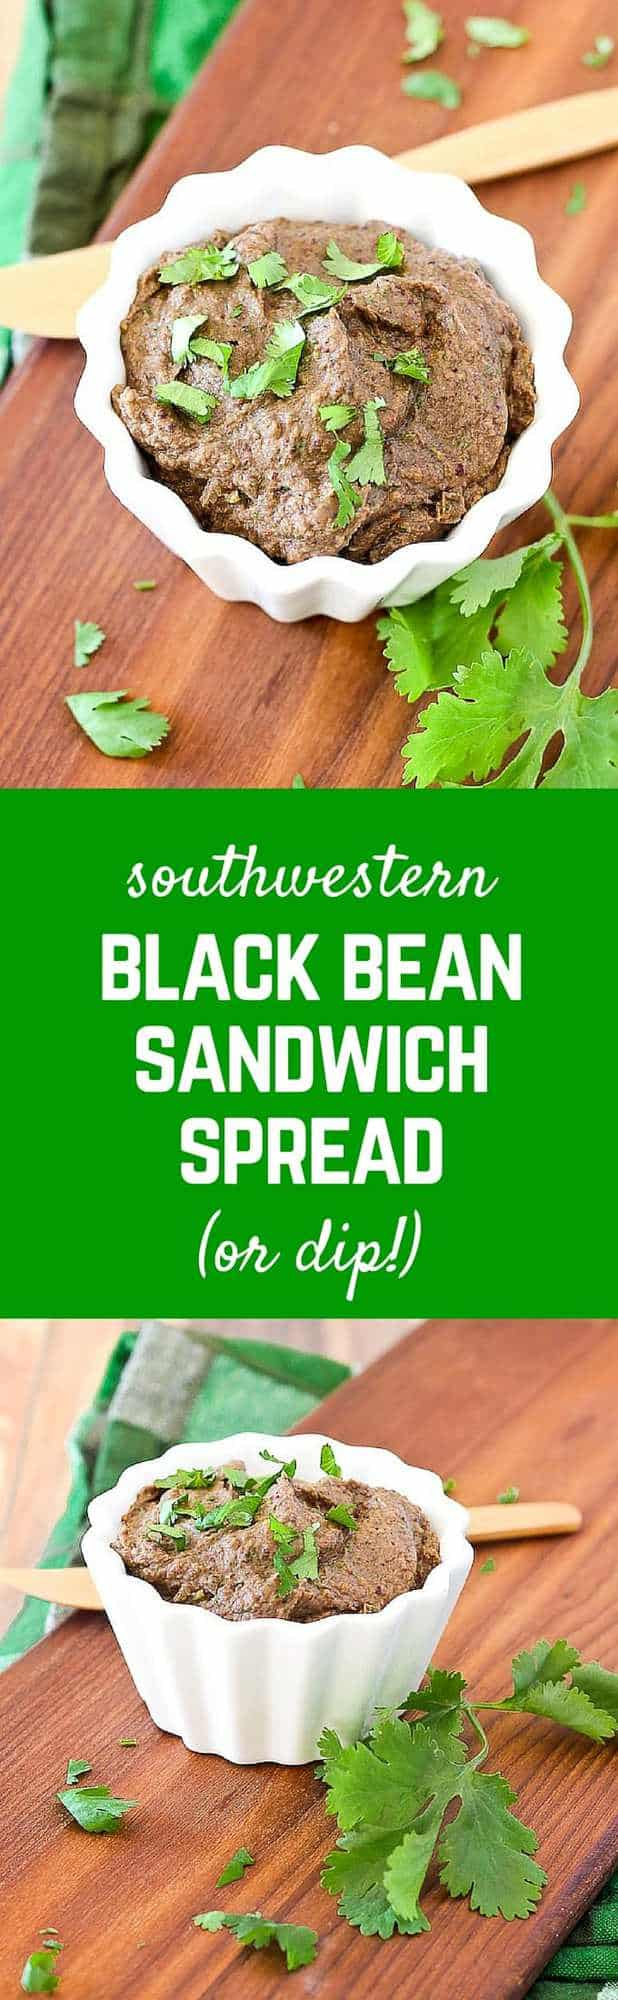 This Black Bean Dip Recipe makes a great sandwich spread - comes together in seconds, flavored by taco seasoning and unbelievably creamy thanks to avocado. Get the recipe on RachelCooks.com!